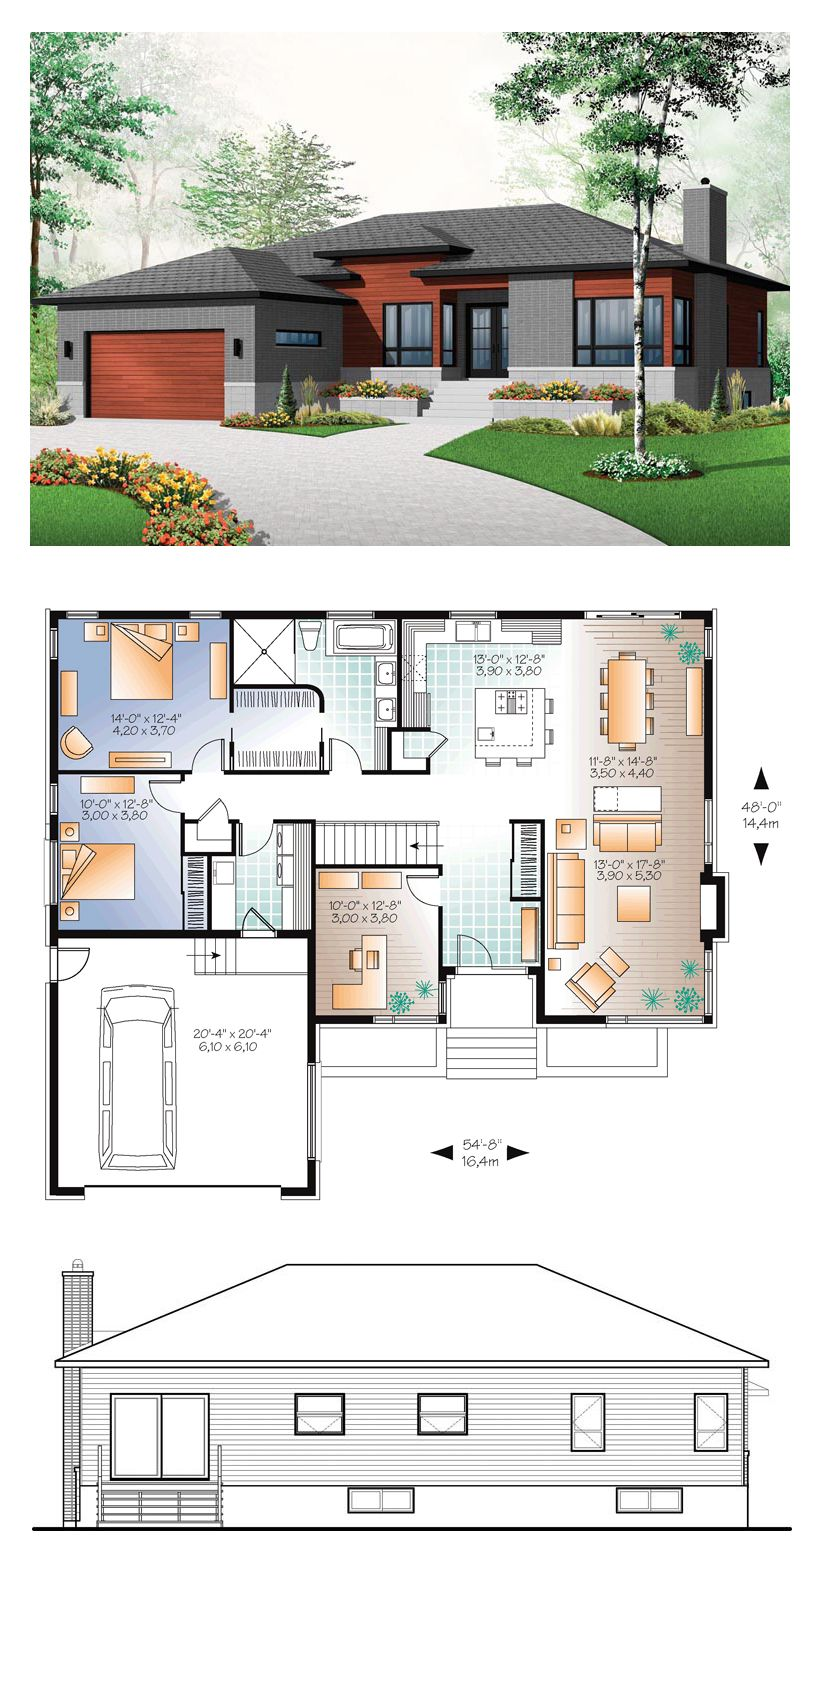 Modern Style House Plan 76355 With 3 Bed 1 Bath 2 Car Garage Modern Style House Plans House Plan Gallery House Blueprints